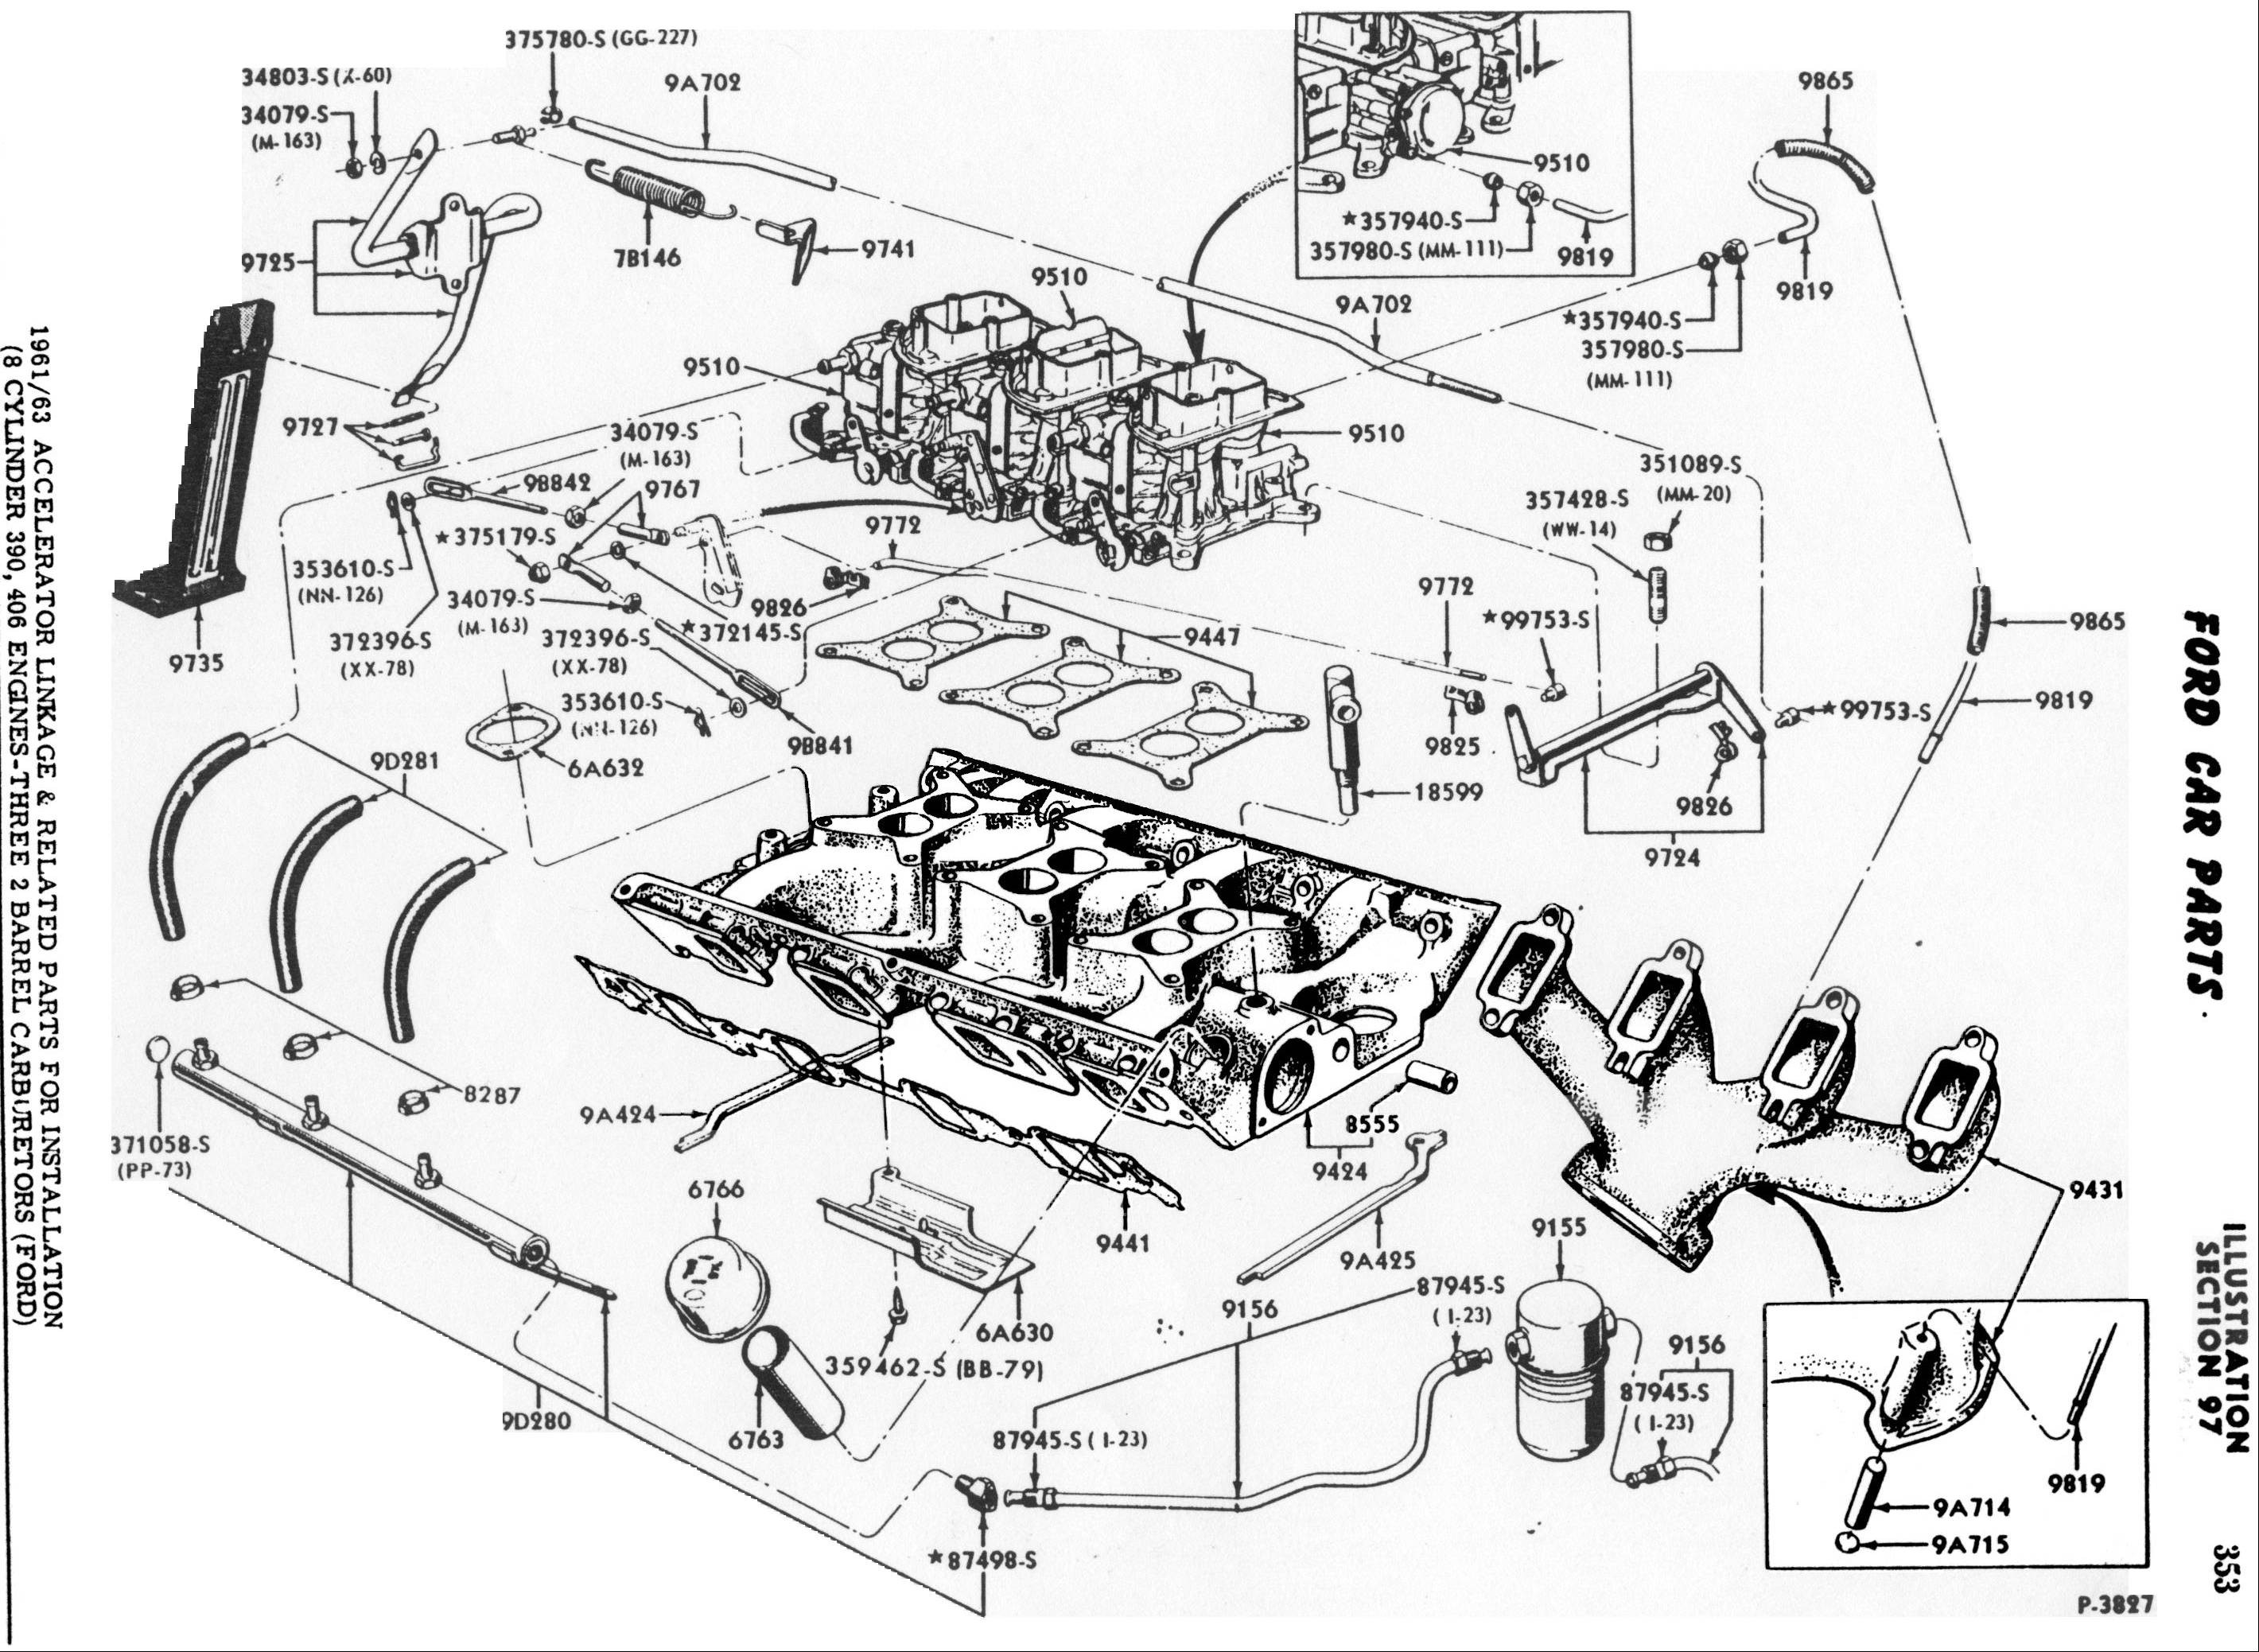 Ford 302 engine diagram fox body 302 engine diagram wiring info rh detoxicrecenze 1995 f150 5 0 engine diagram 1995 ford 302 engine parts